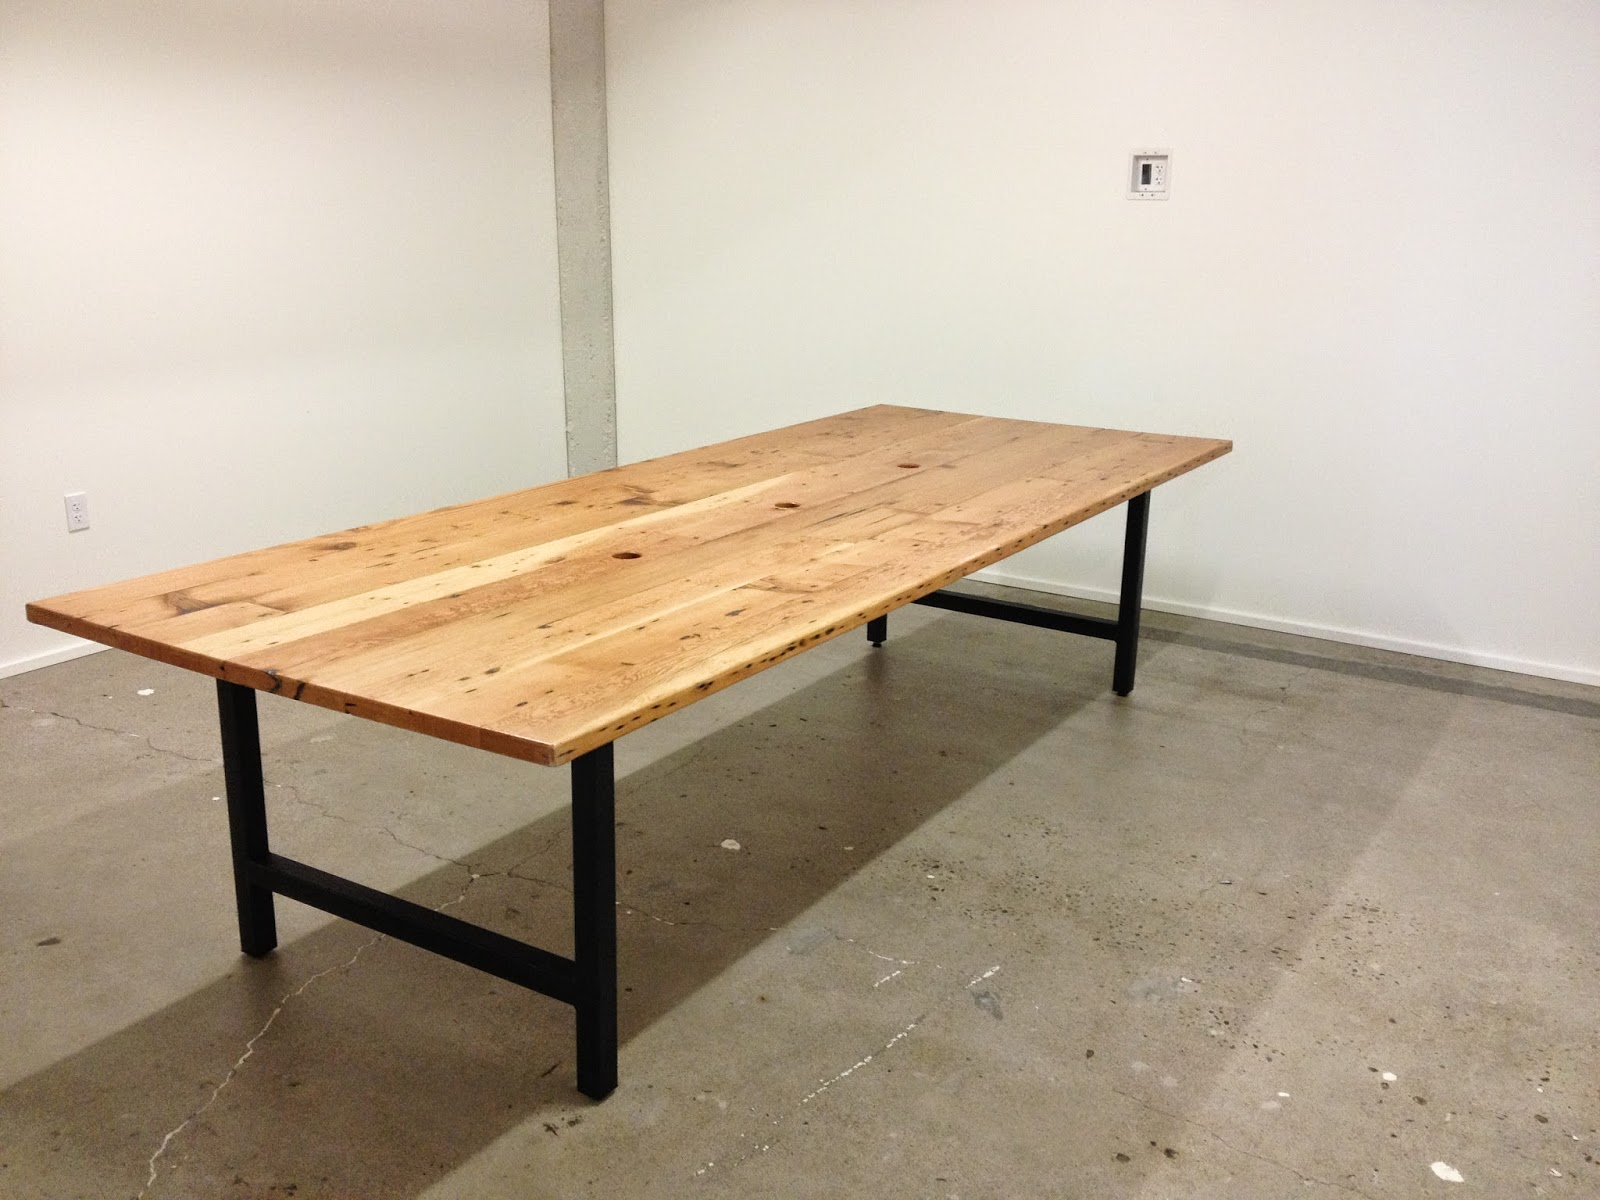 Pnw Reclaimed Douglas Fir Conference Table With Steel Legs - 4 foot conference table